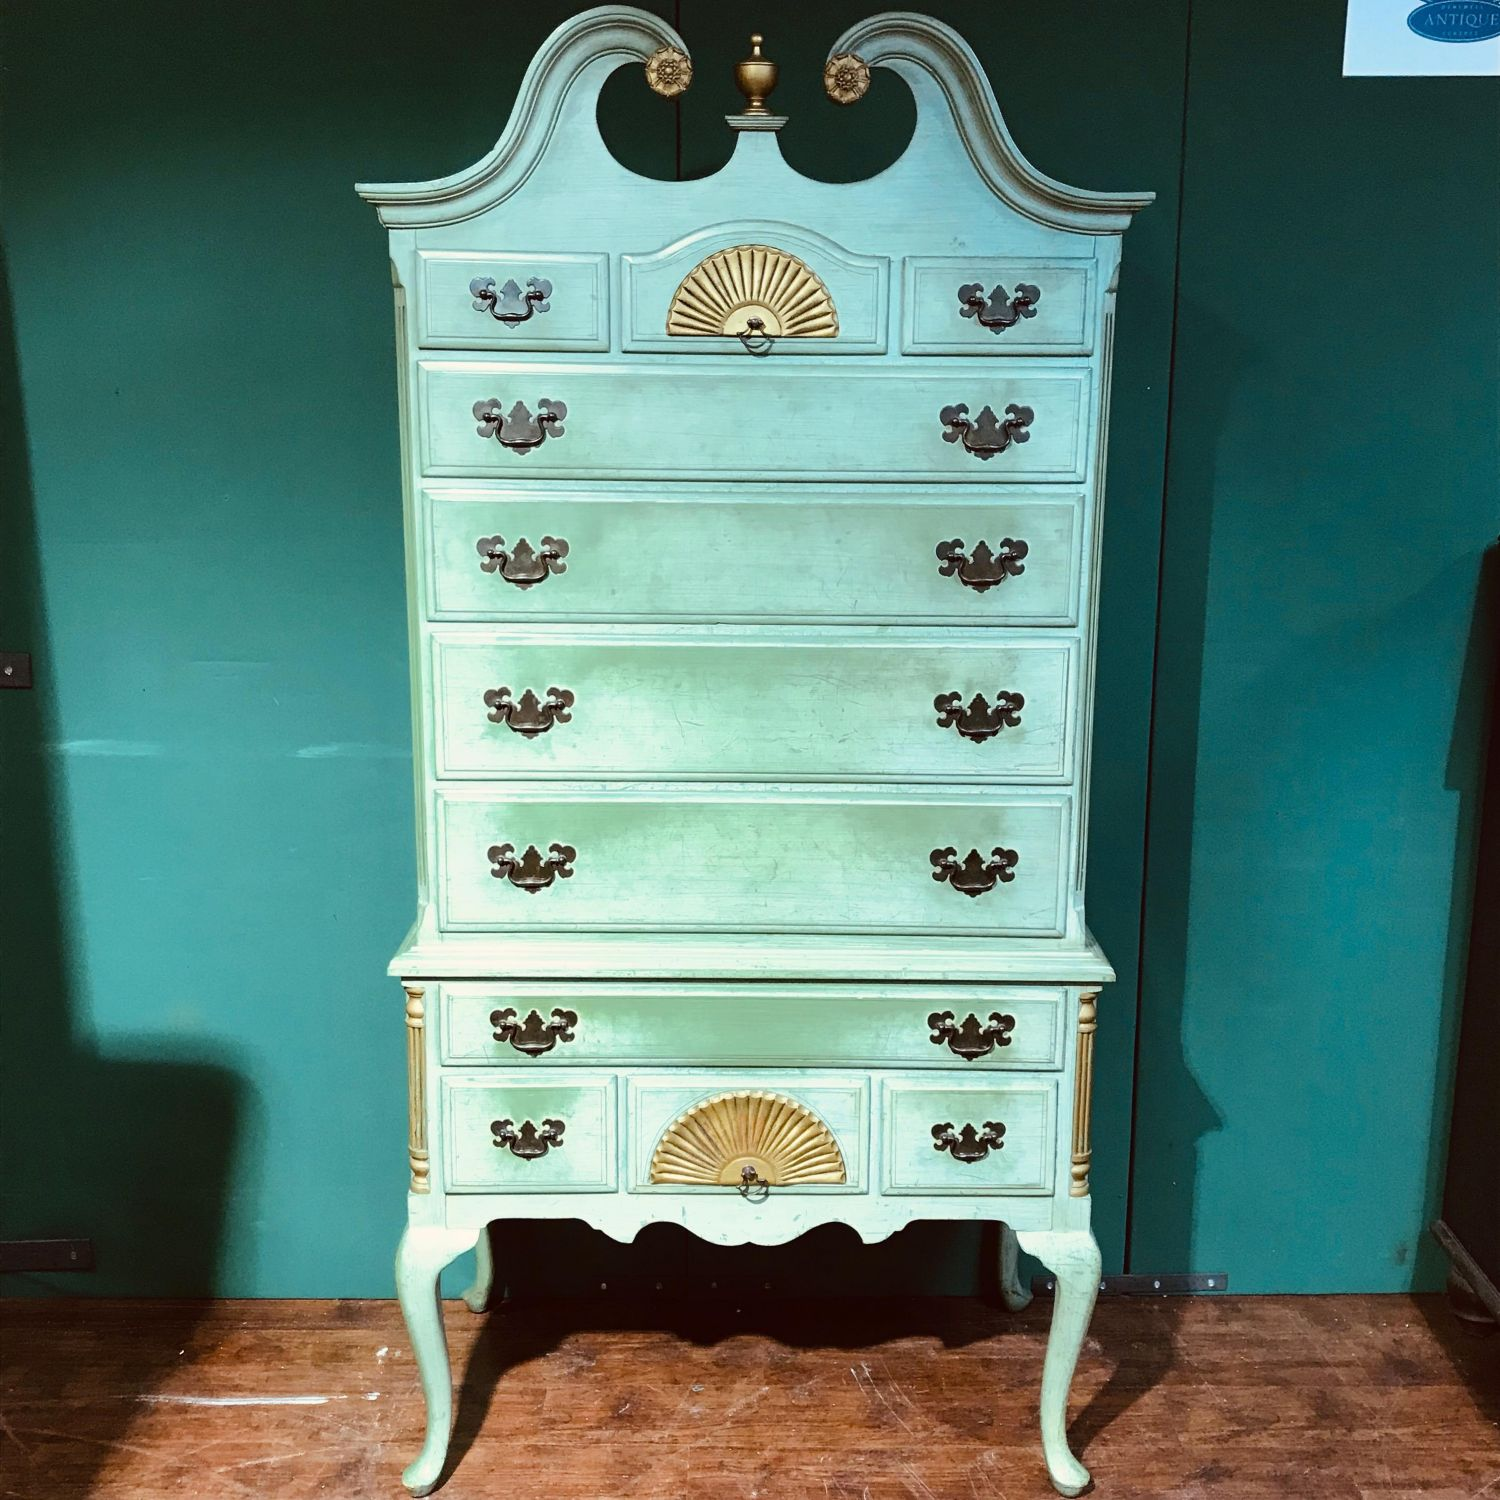 Decorative Hand Painted Upcycled Tall Chest Of Drawers Ec2b5bcc 43fd 4592 981d 8f09ac89a47e Jpeg